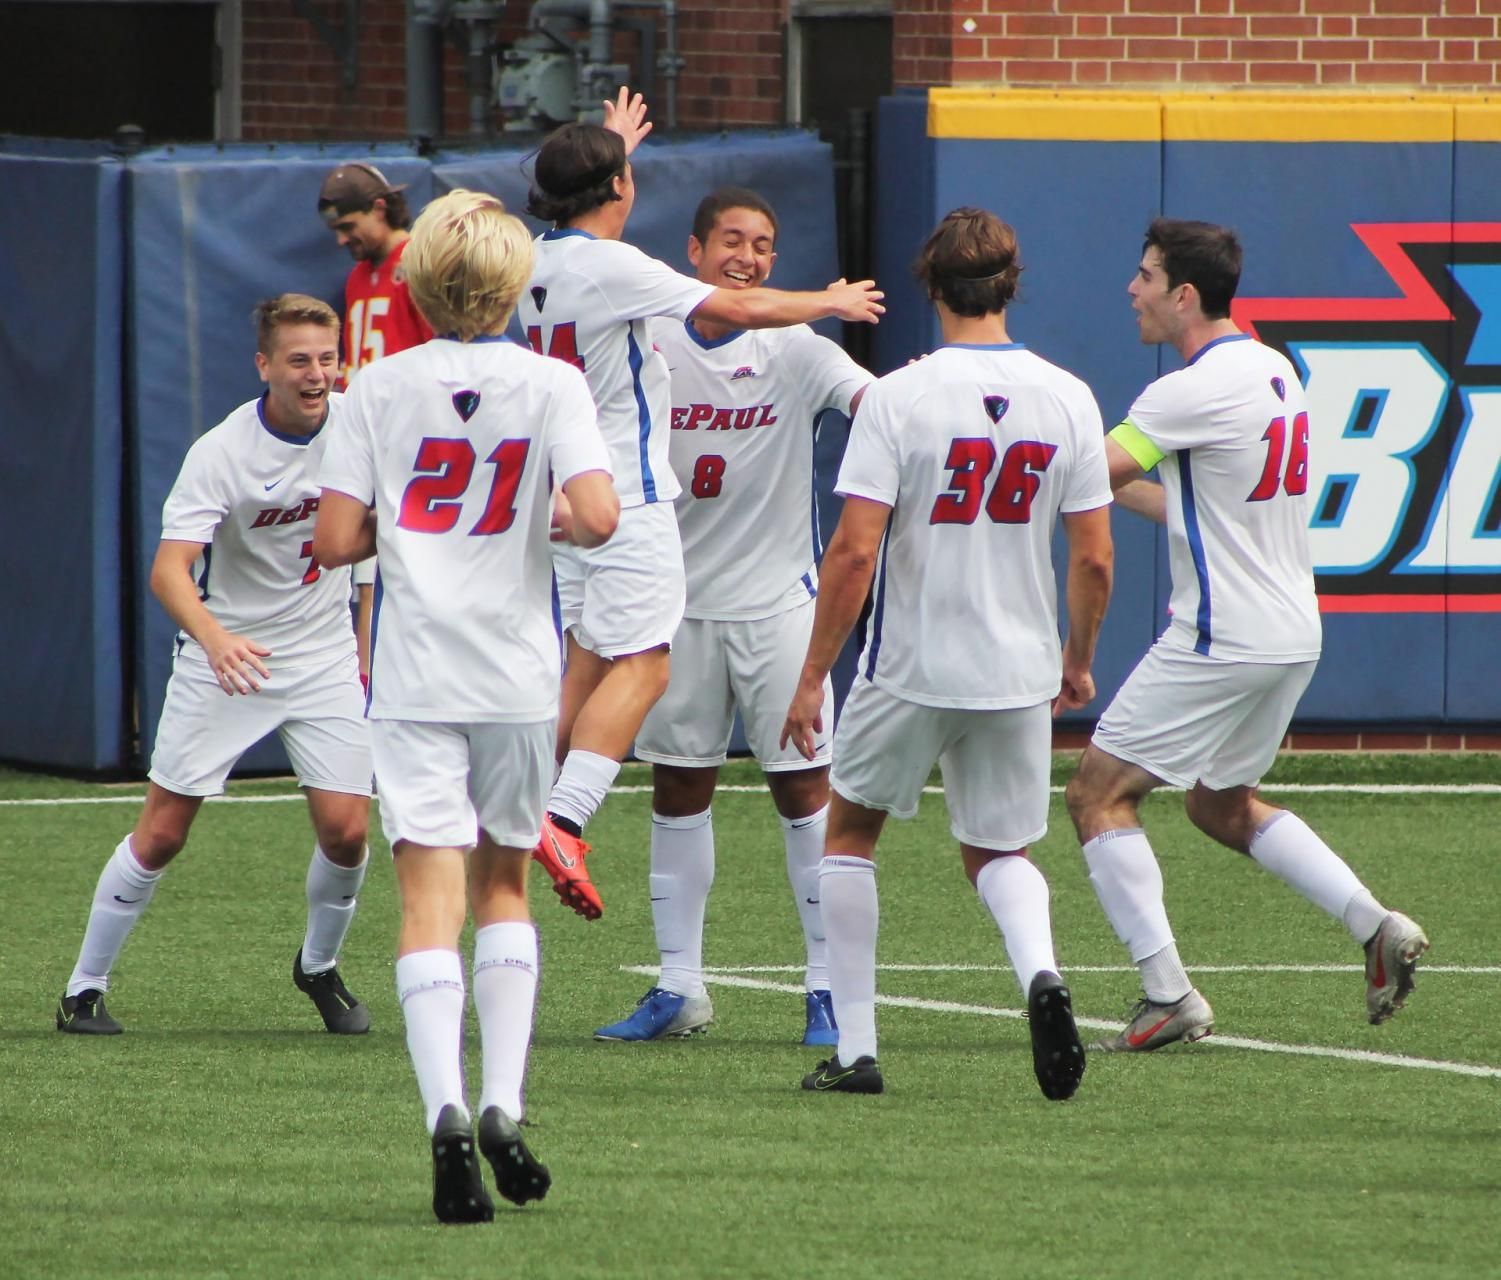 The DePaul Men's Soccer Team celebrate as Sophomore midfielder Youssef Ramadan scores the first goal of the game against Drake University. The Blue Demons beat Drake 3-0 on Monday at Wish Field.